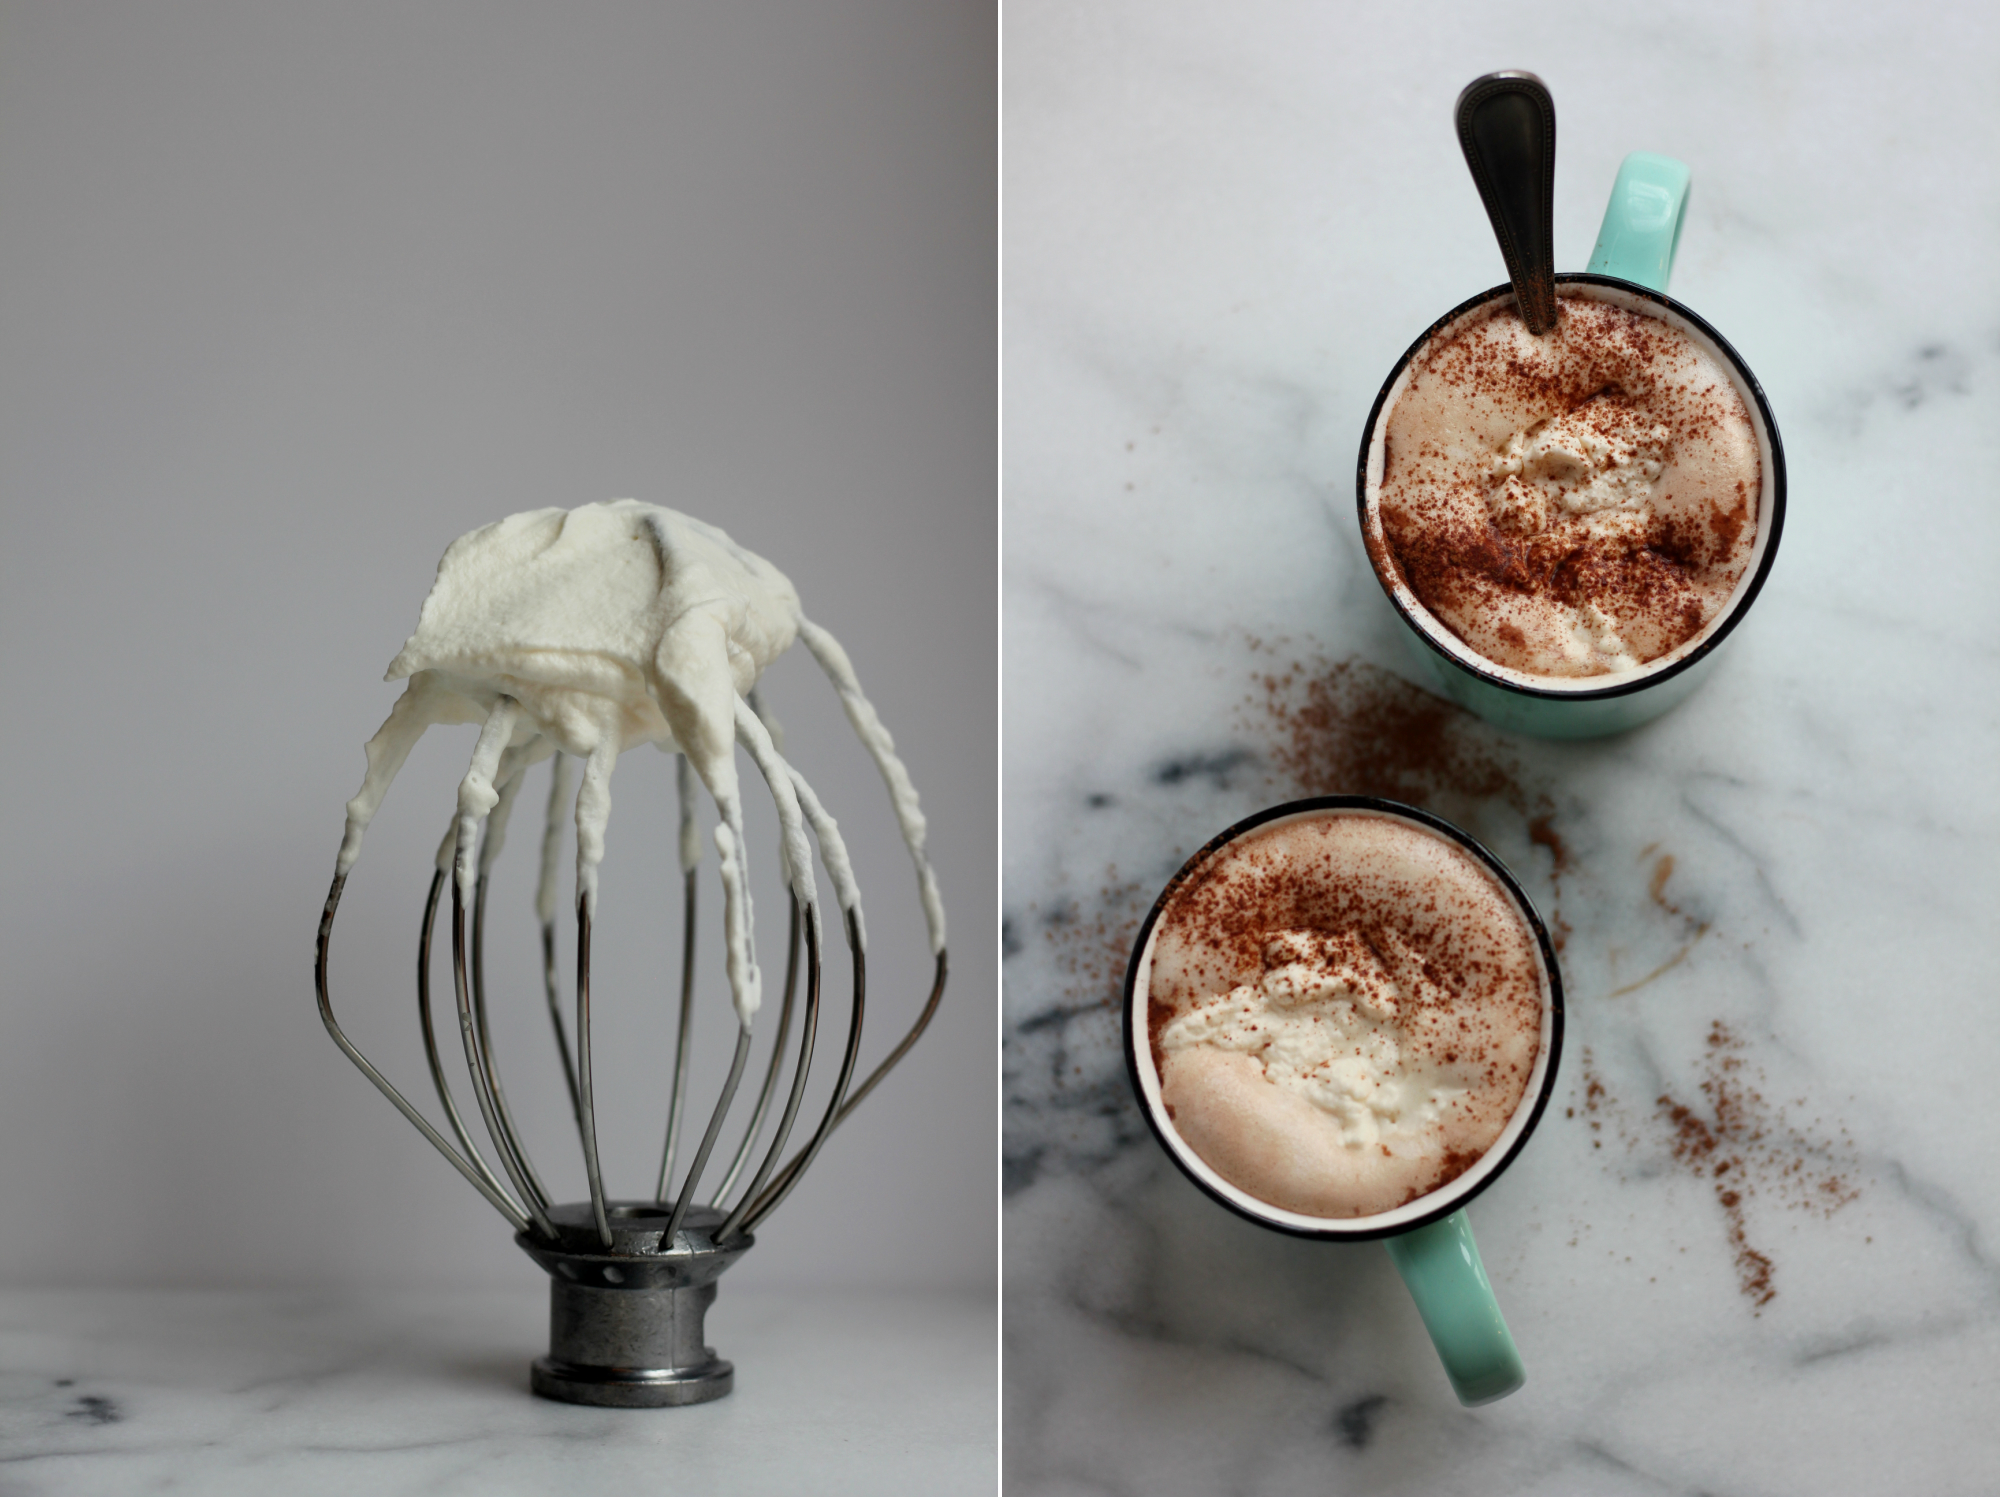 Make-Ahead Whipped Cream + Hot Chocolate | wholesomefamilykitchen.com